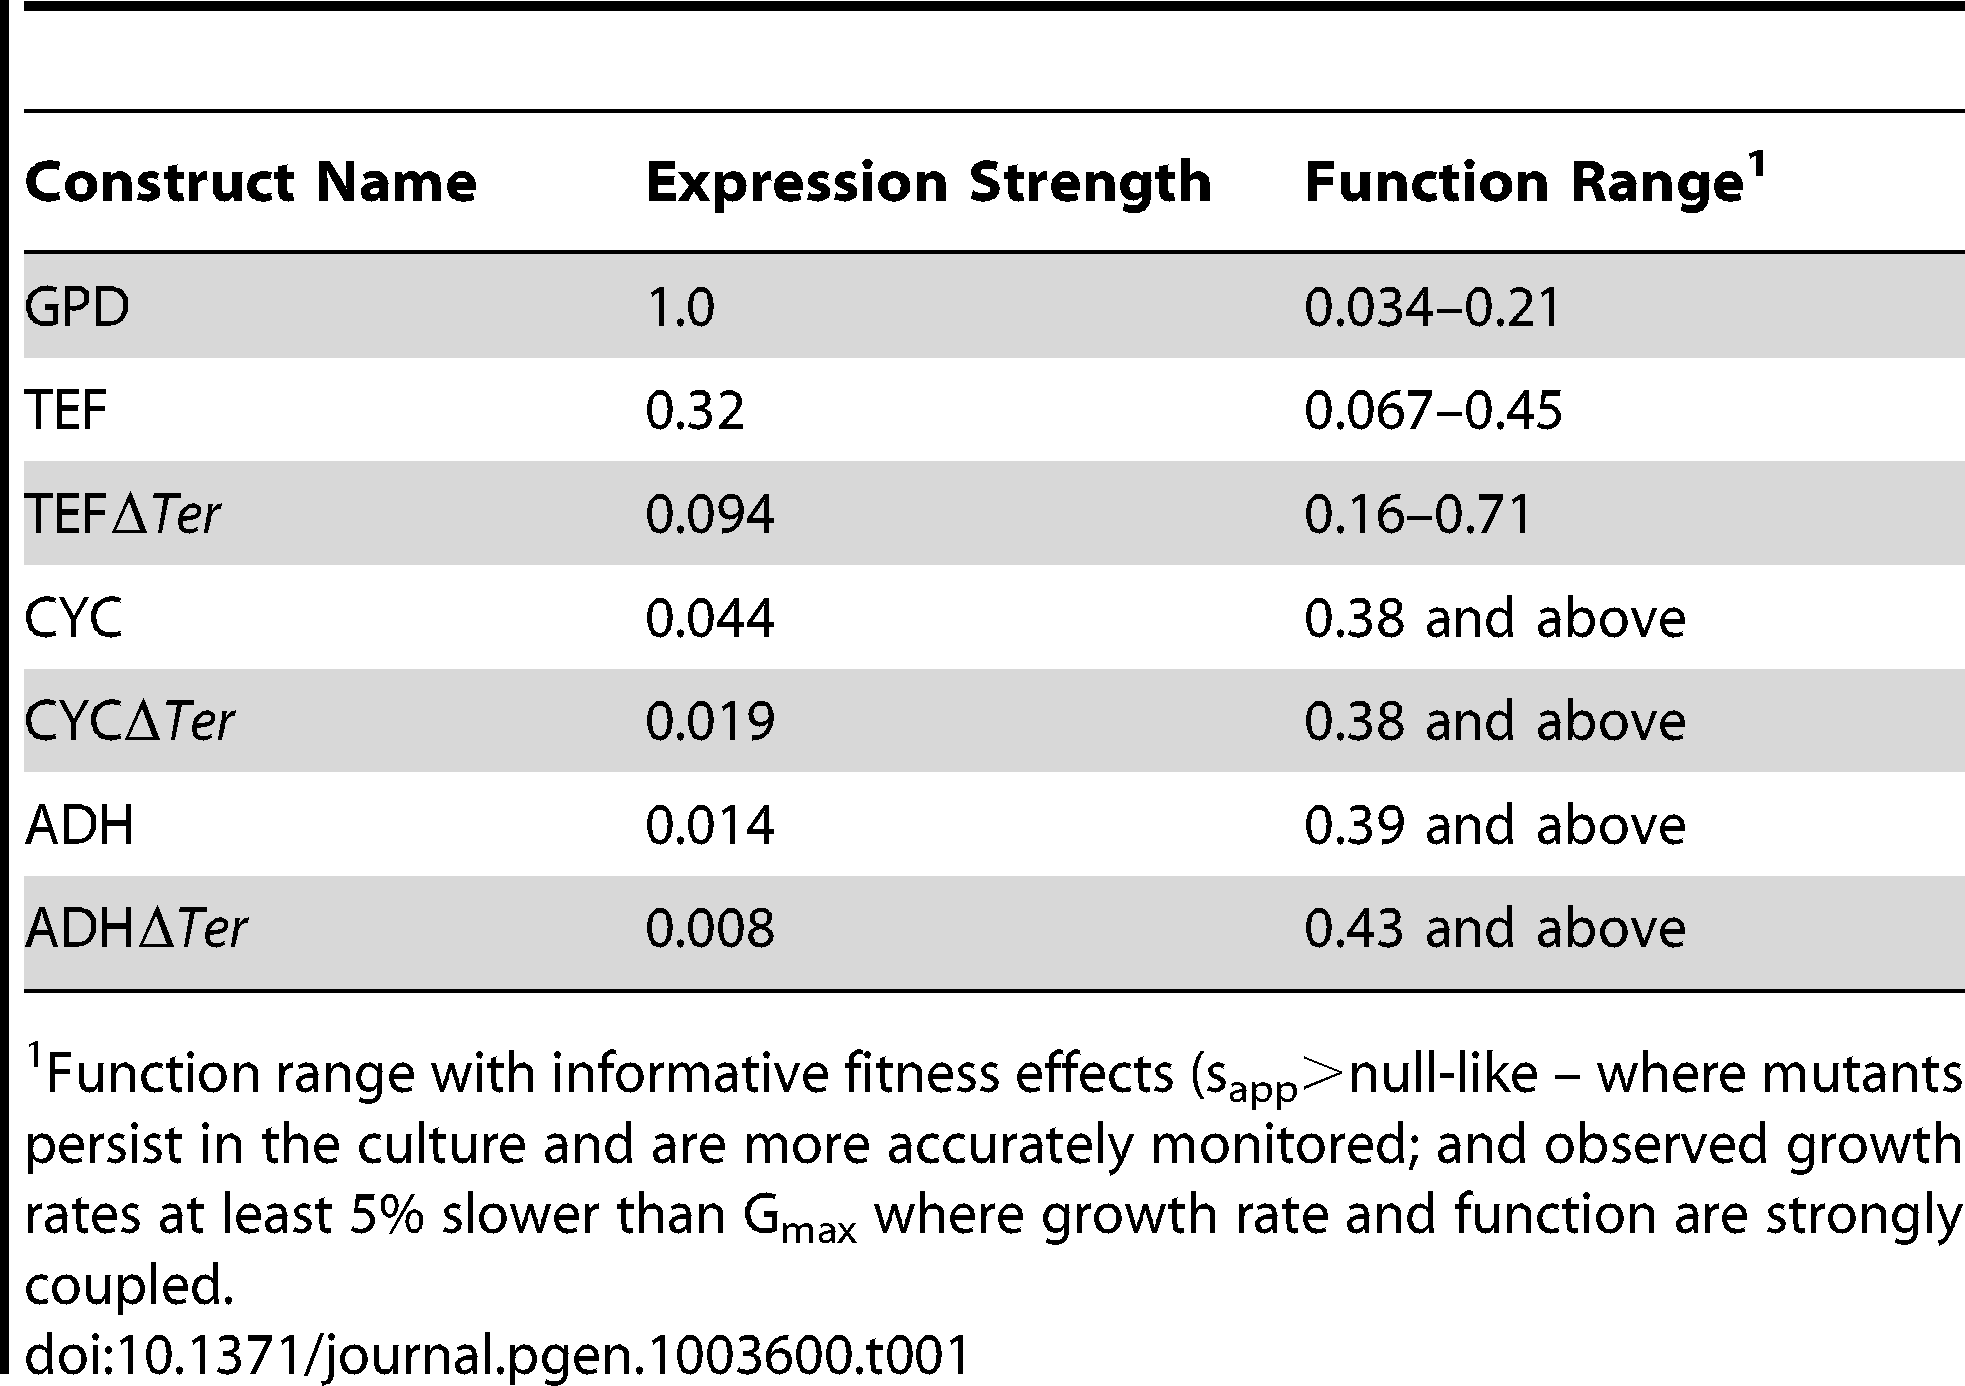 Activity ranges interrogated at each expression-strength.